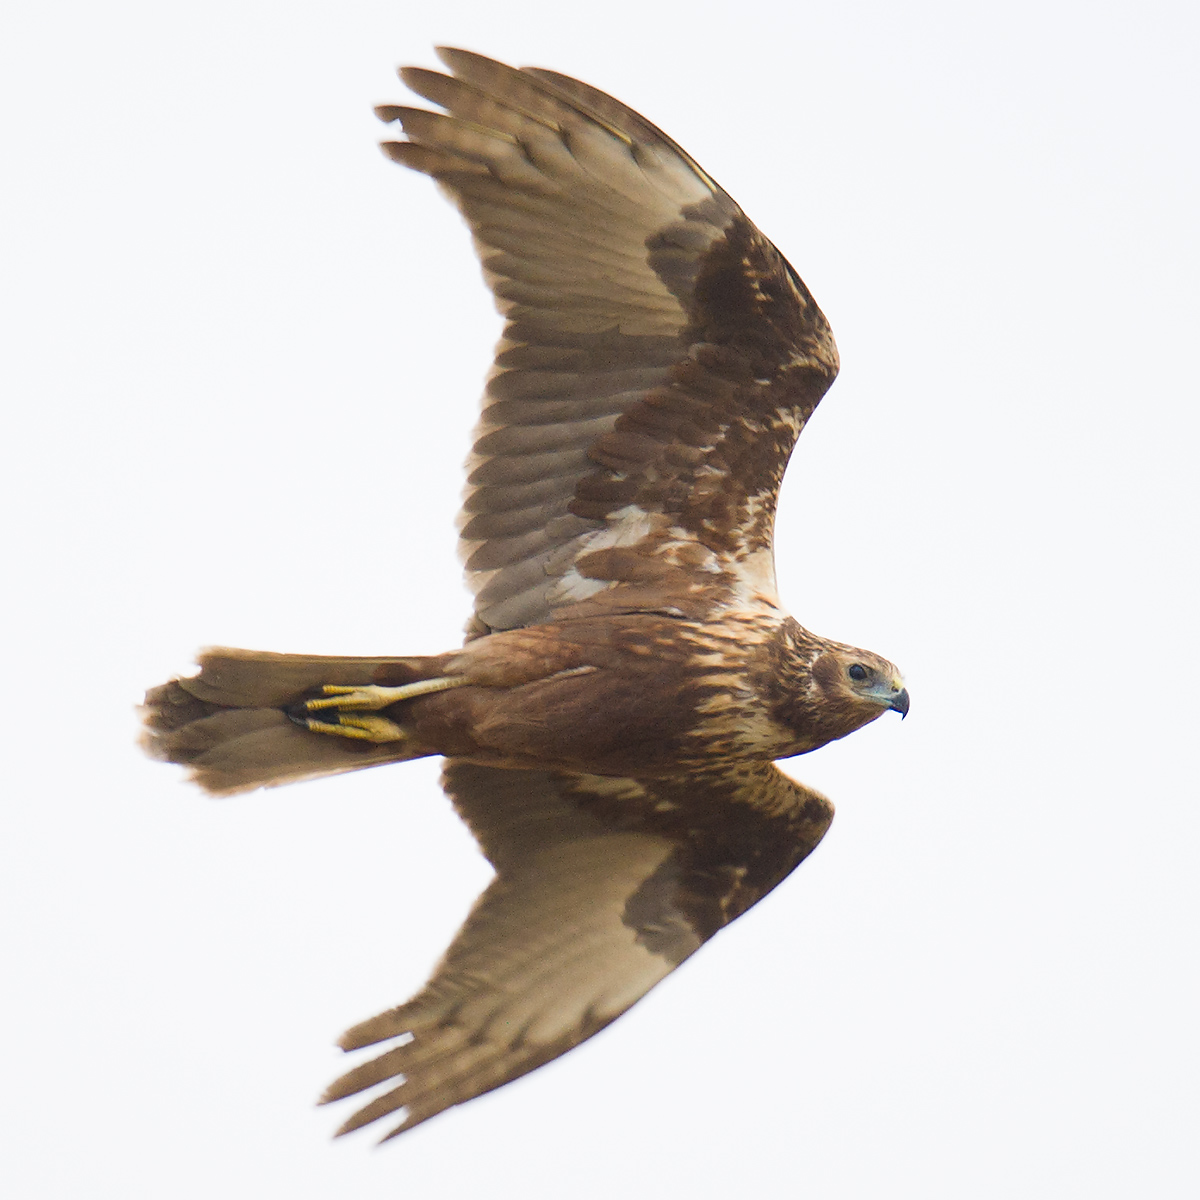 Eastern Marsh Harrier, Hengsha. Craig Brelsford.